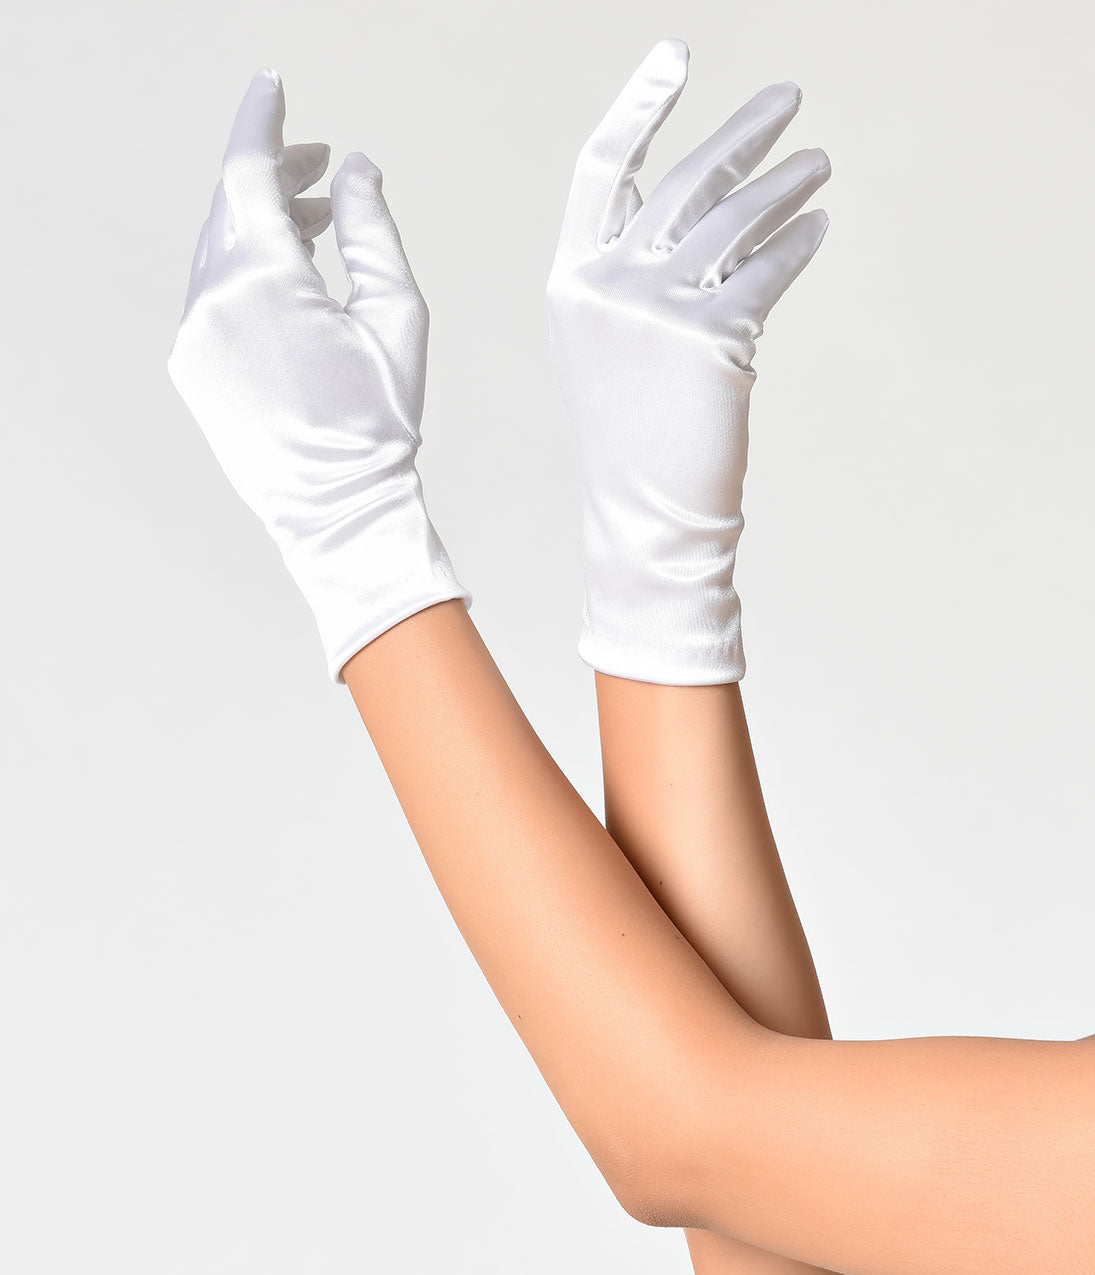 Victorian Gloves | Victorian Accessories Vintage Style White Satin Wrist Gloves $14.00 AT vintagedancer.com